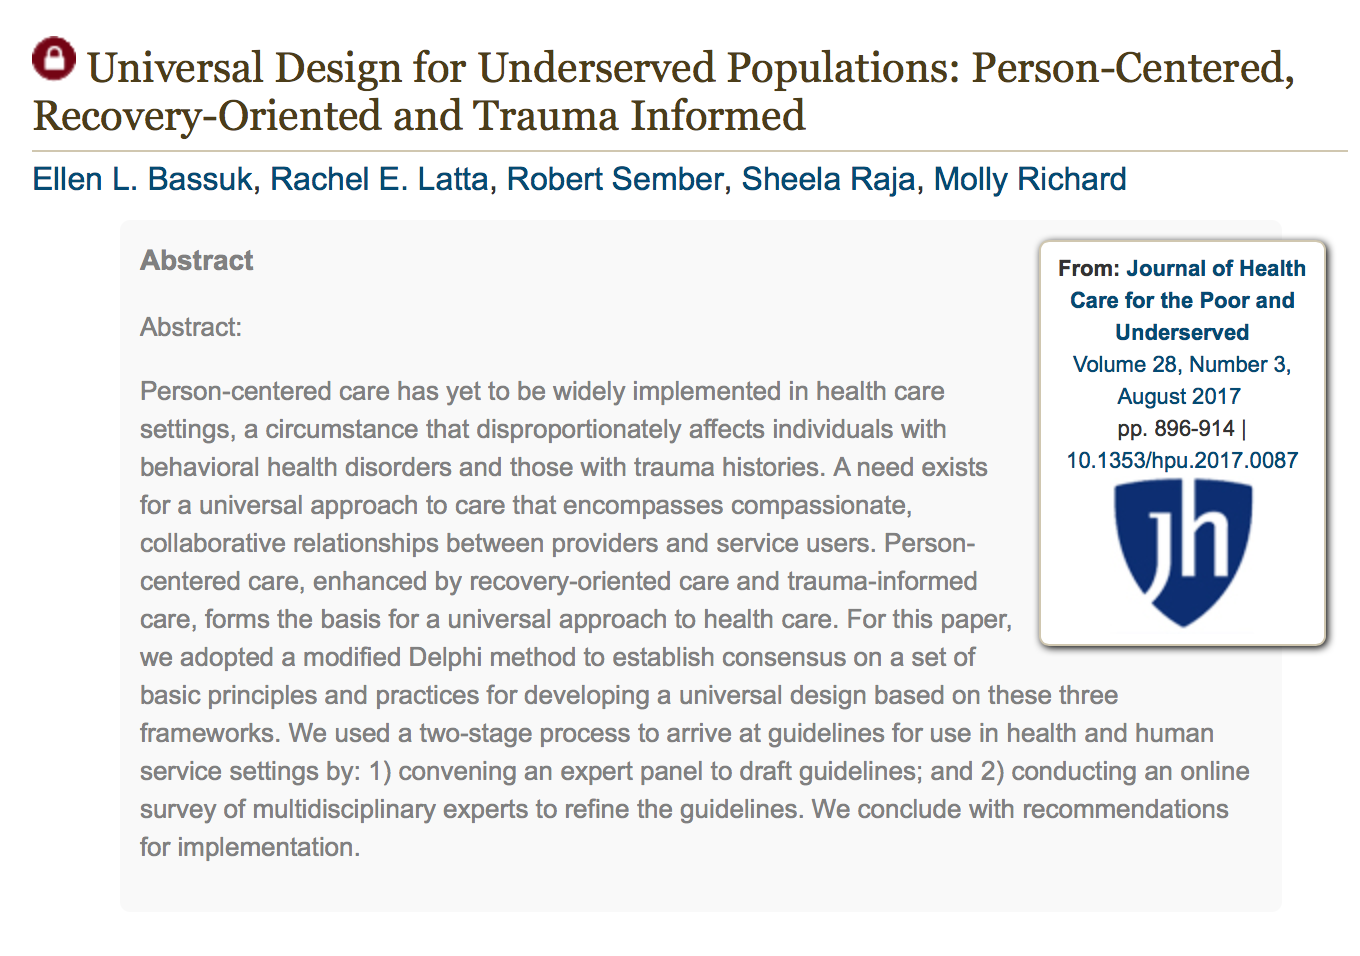 Robert Sember co-authors article on Universal Design for Health Care